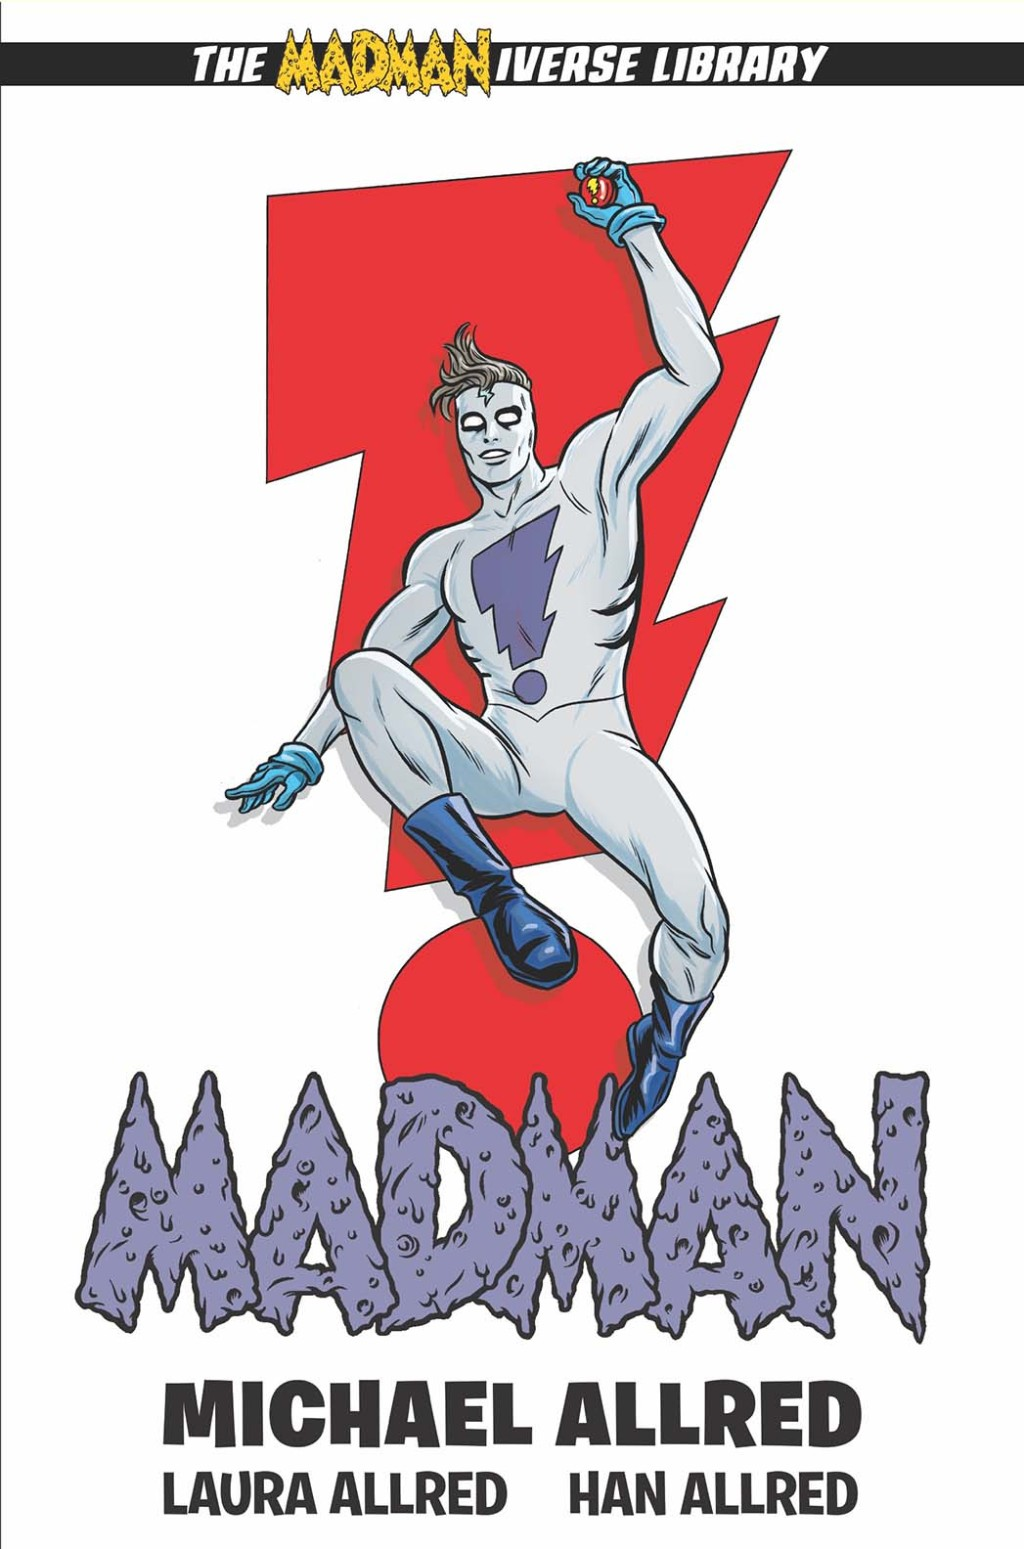 Madman Library Edition Announcement